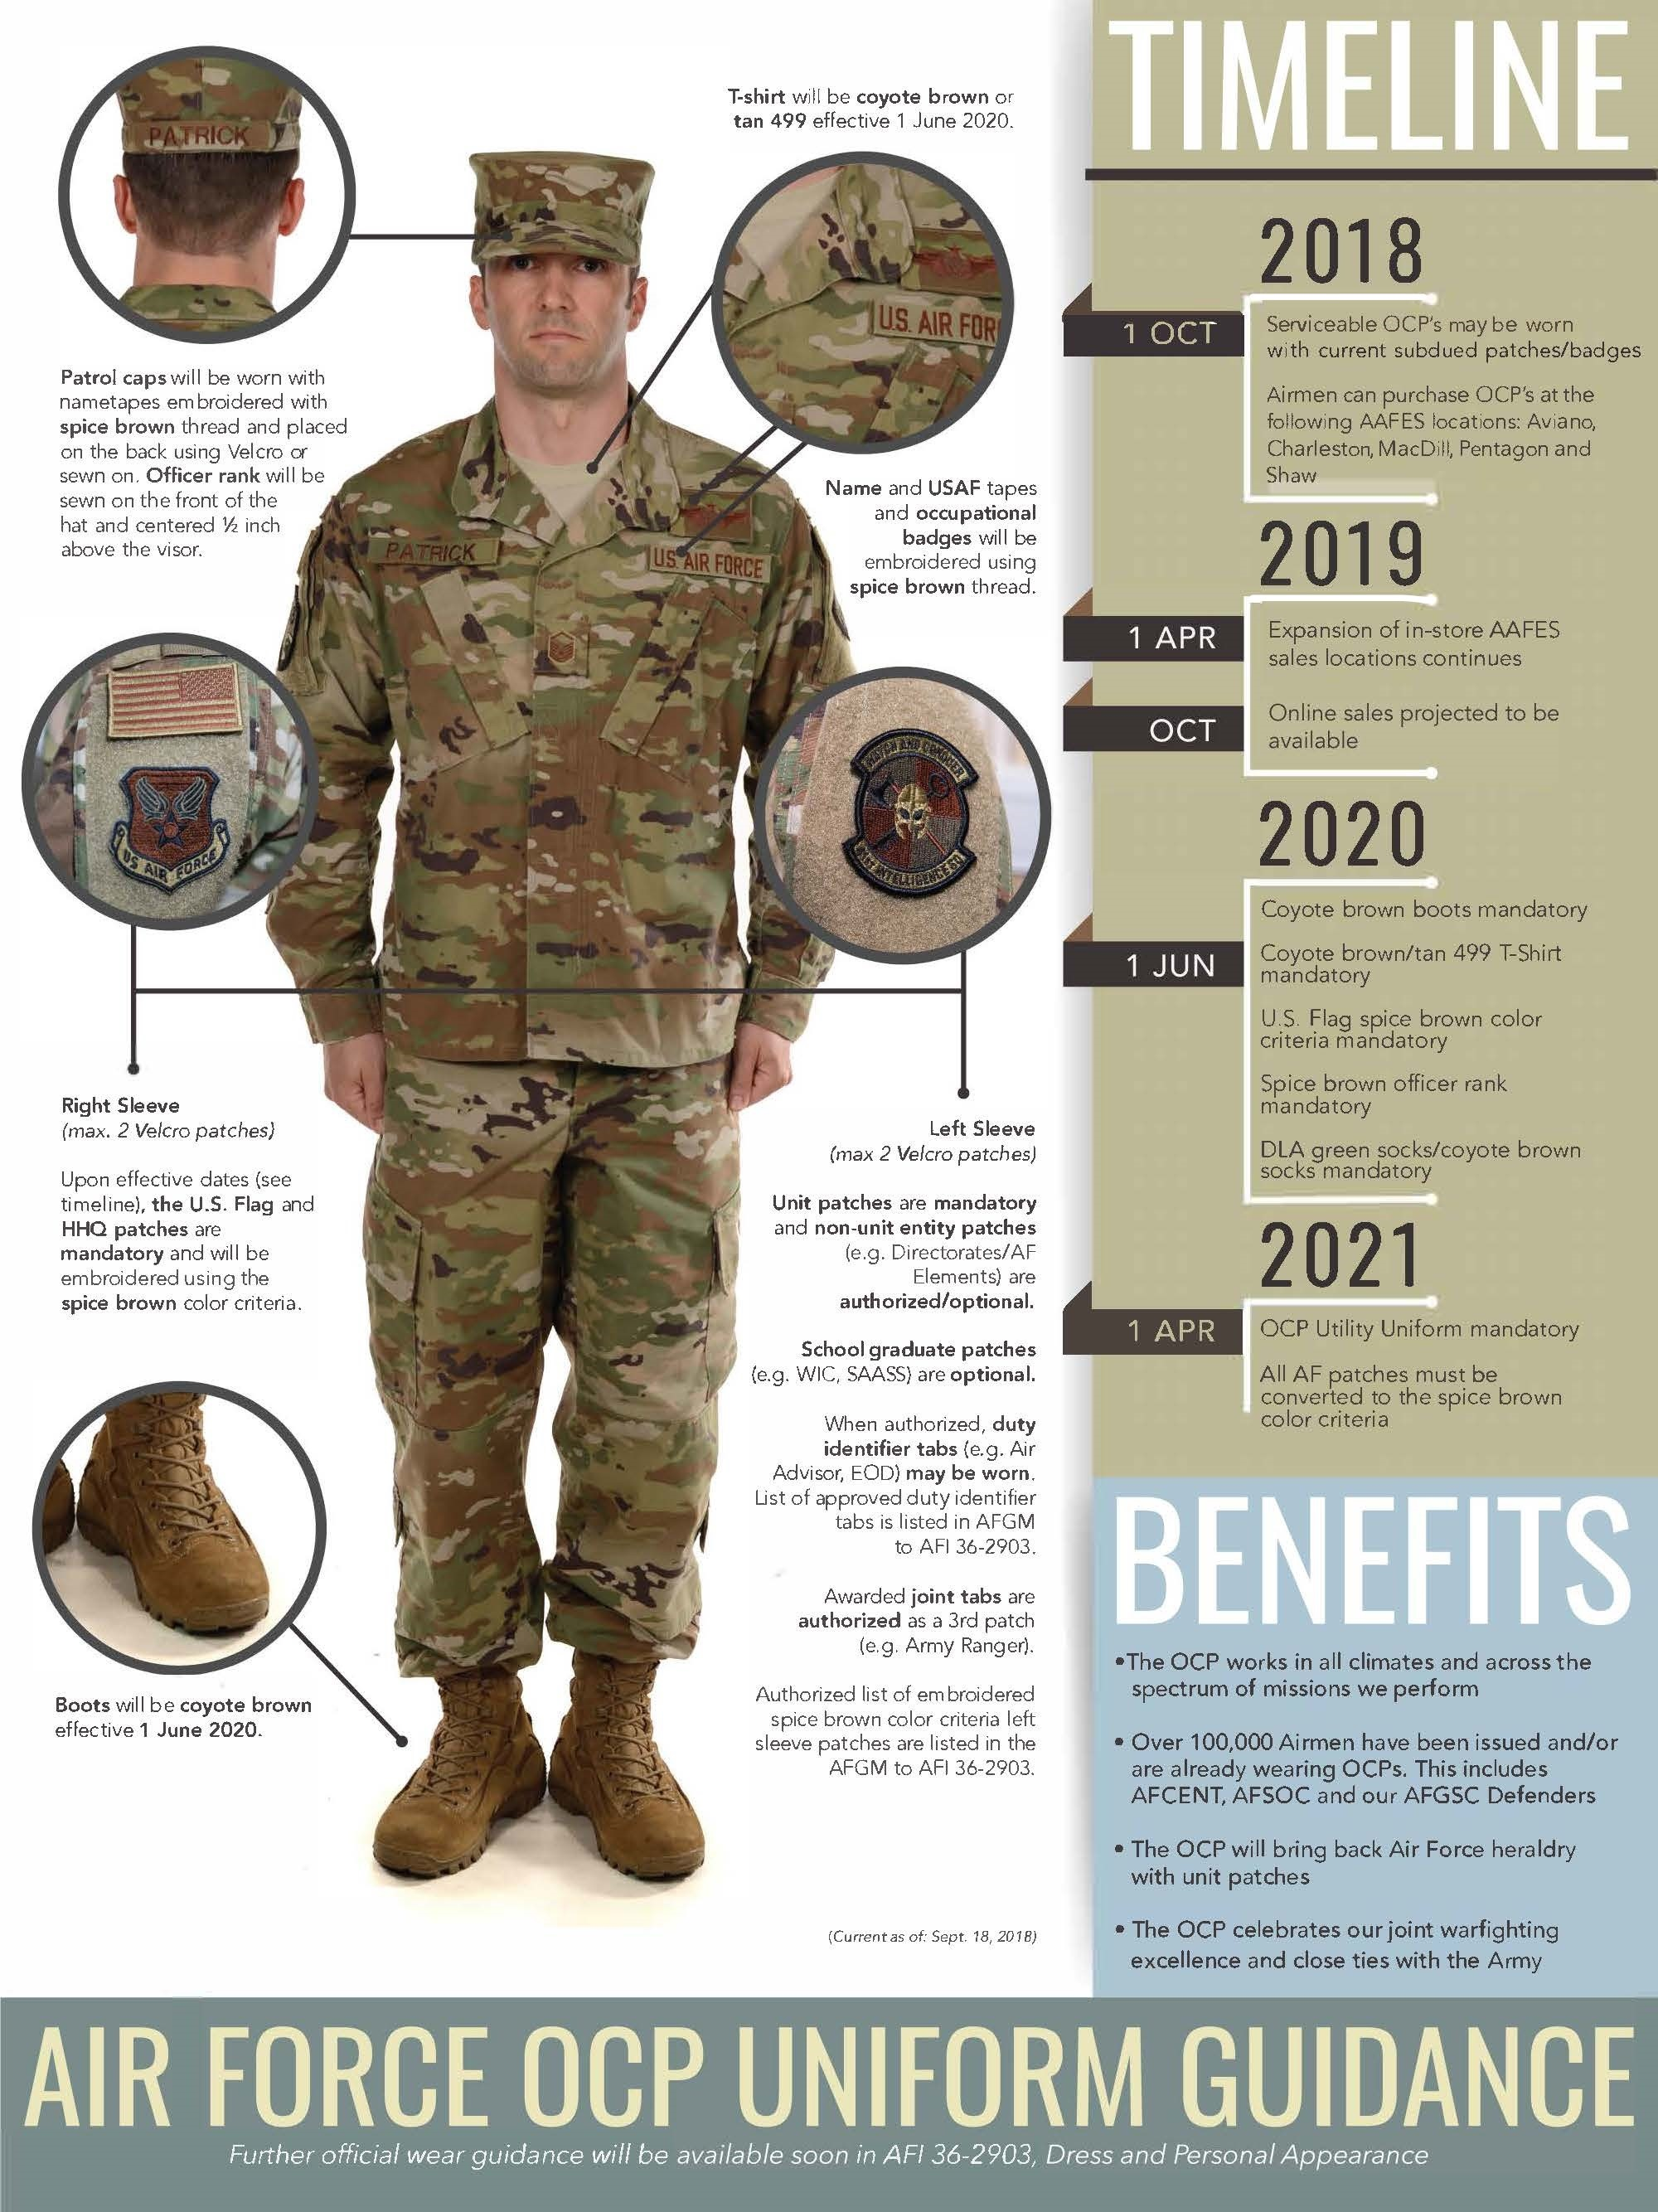 How to Wear OCP s on October 1st   Altus Air Force Base   Article ... 659bcd258